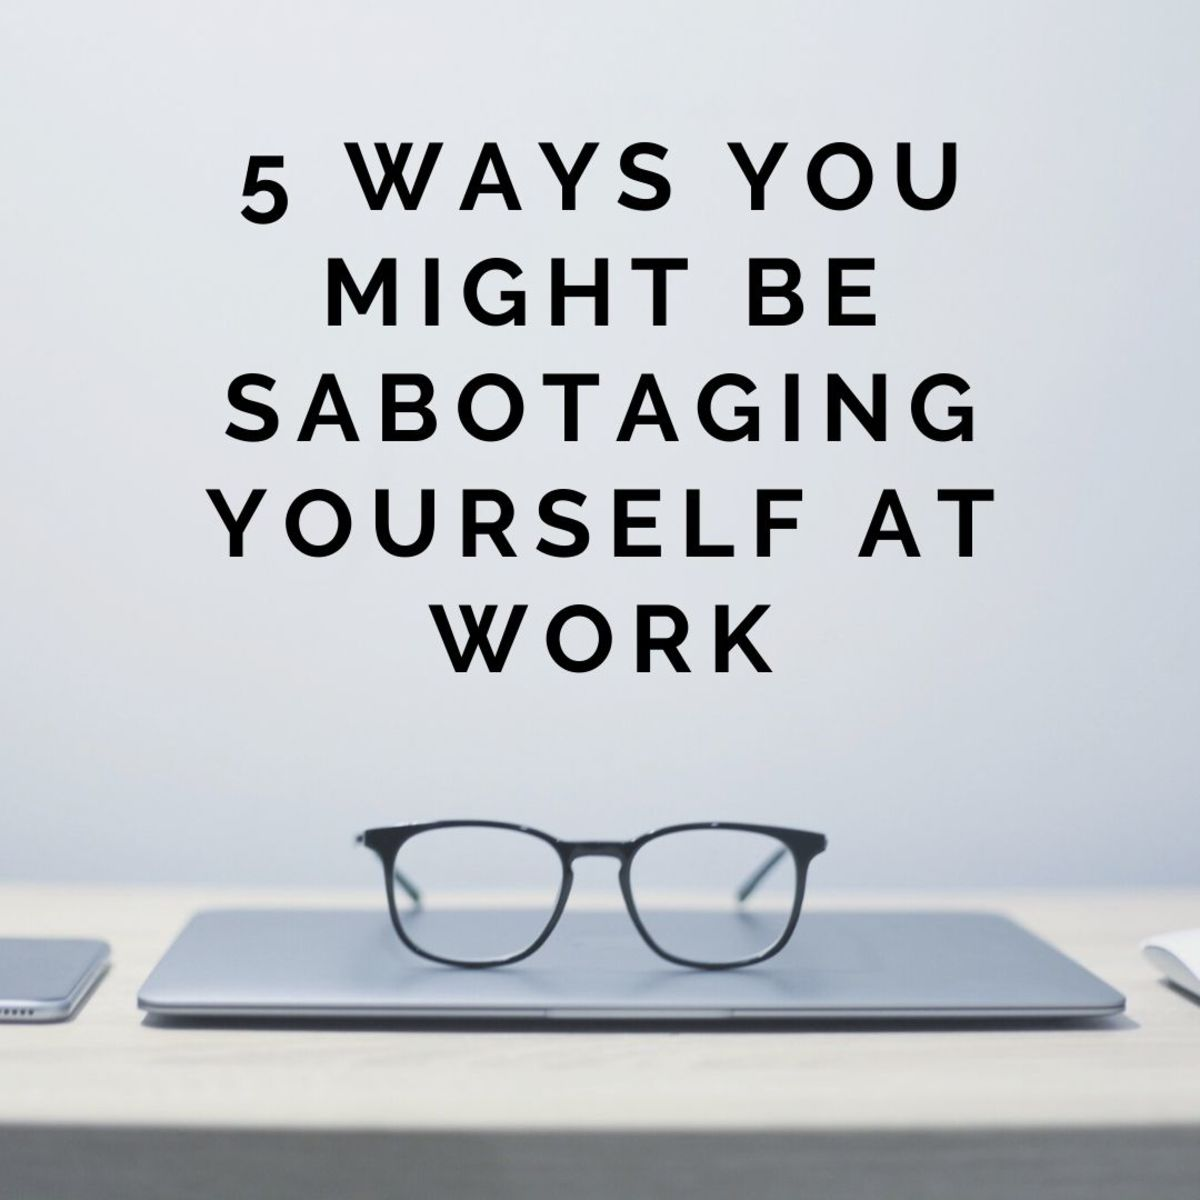 Five Signs You're Sabotaging Yourself at Work